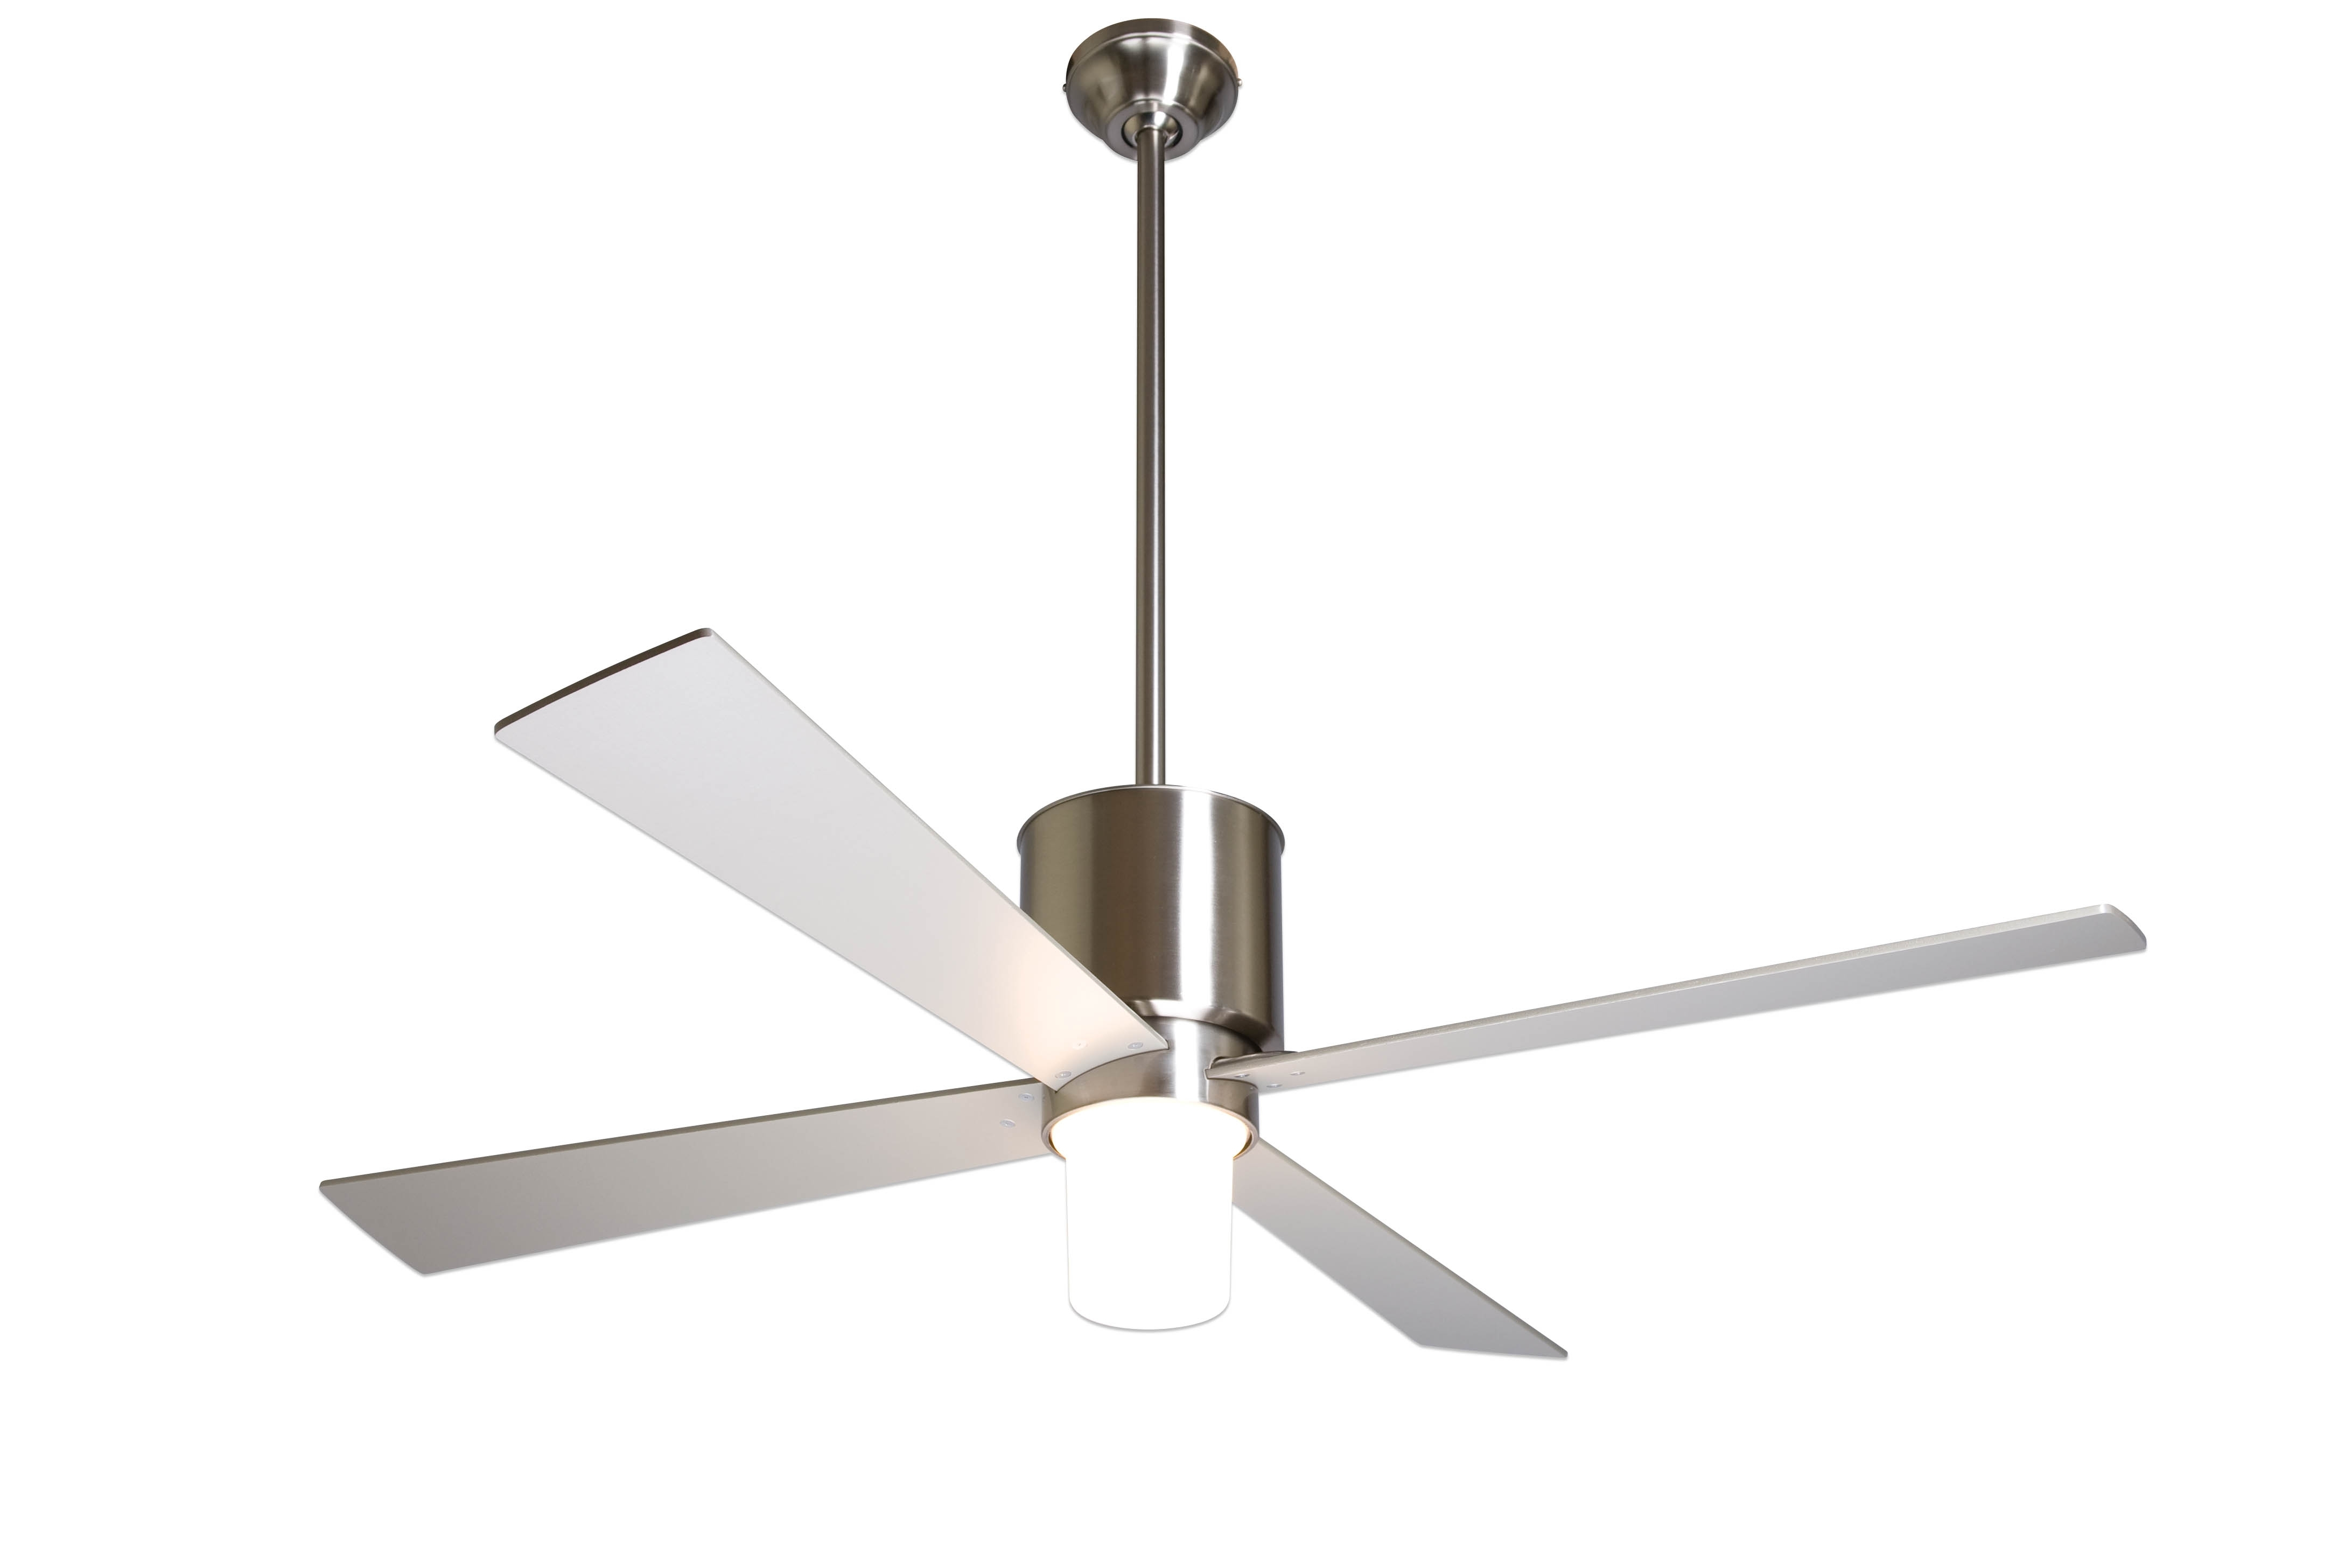 Lighting And Ceiling Fans With Most Up To Date Outdoor Ceiling Fans For Barns (View 8 of 20)